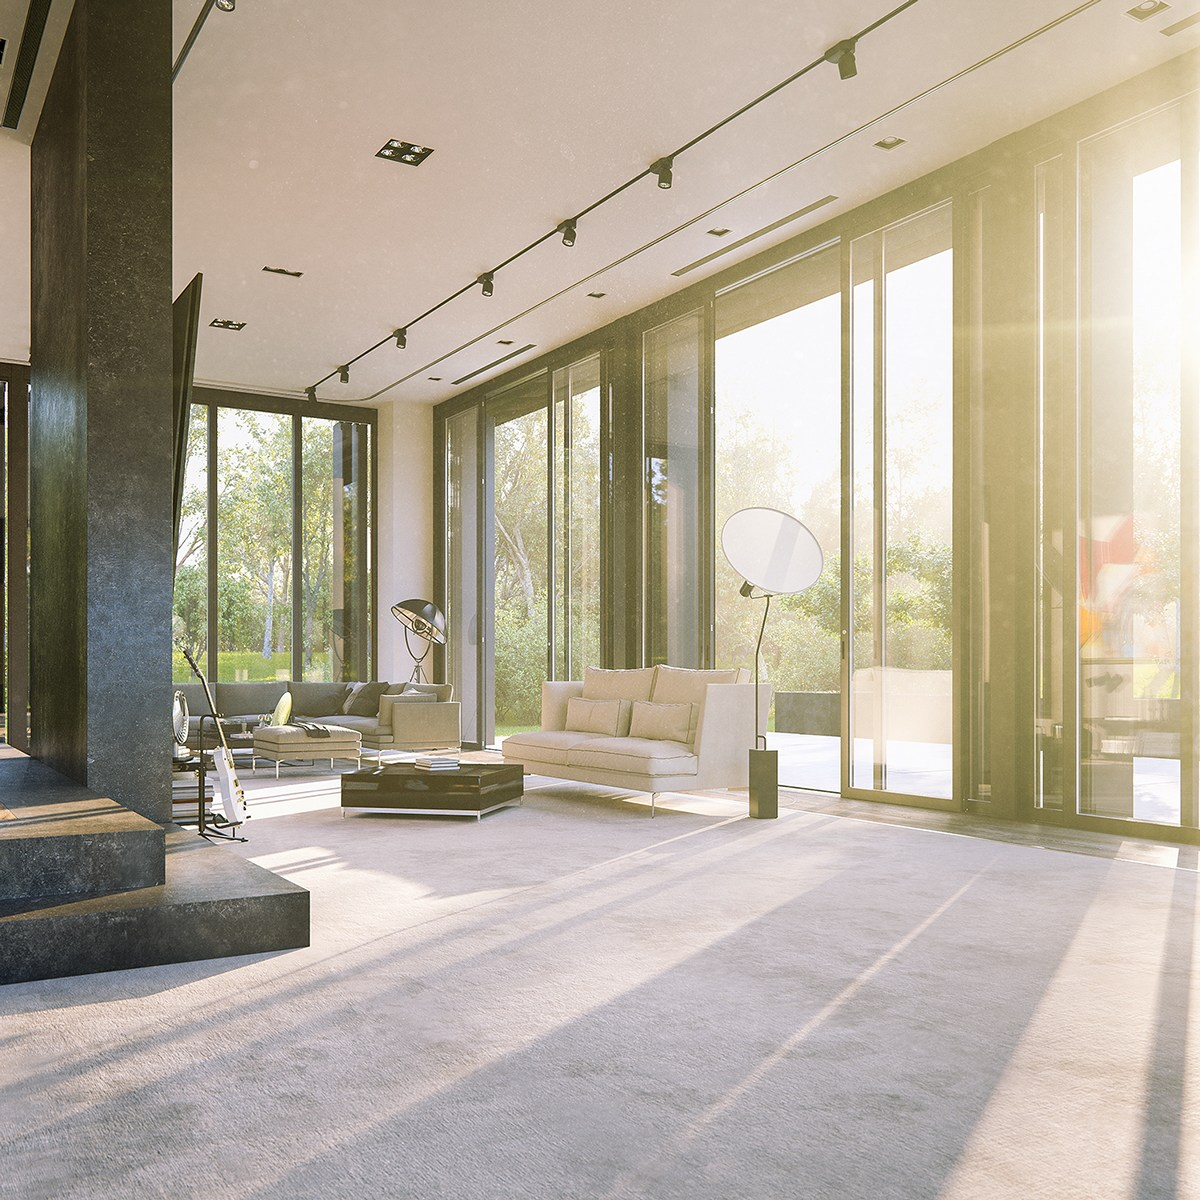 Bright Industrial Modern Interior - 3 natural interior concepts with floor to ceiling windows